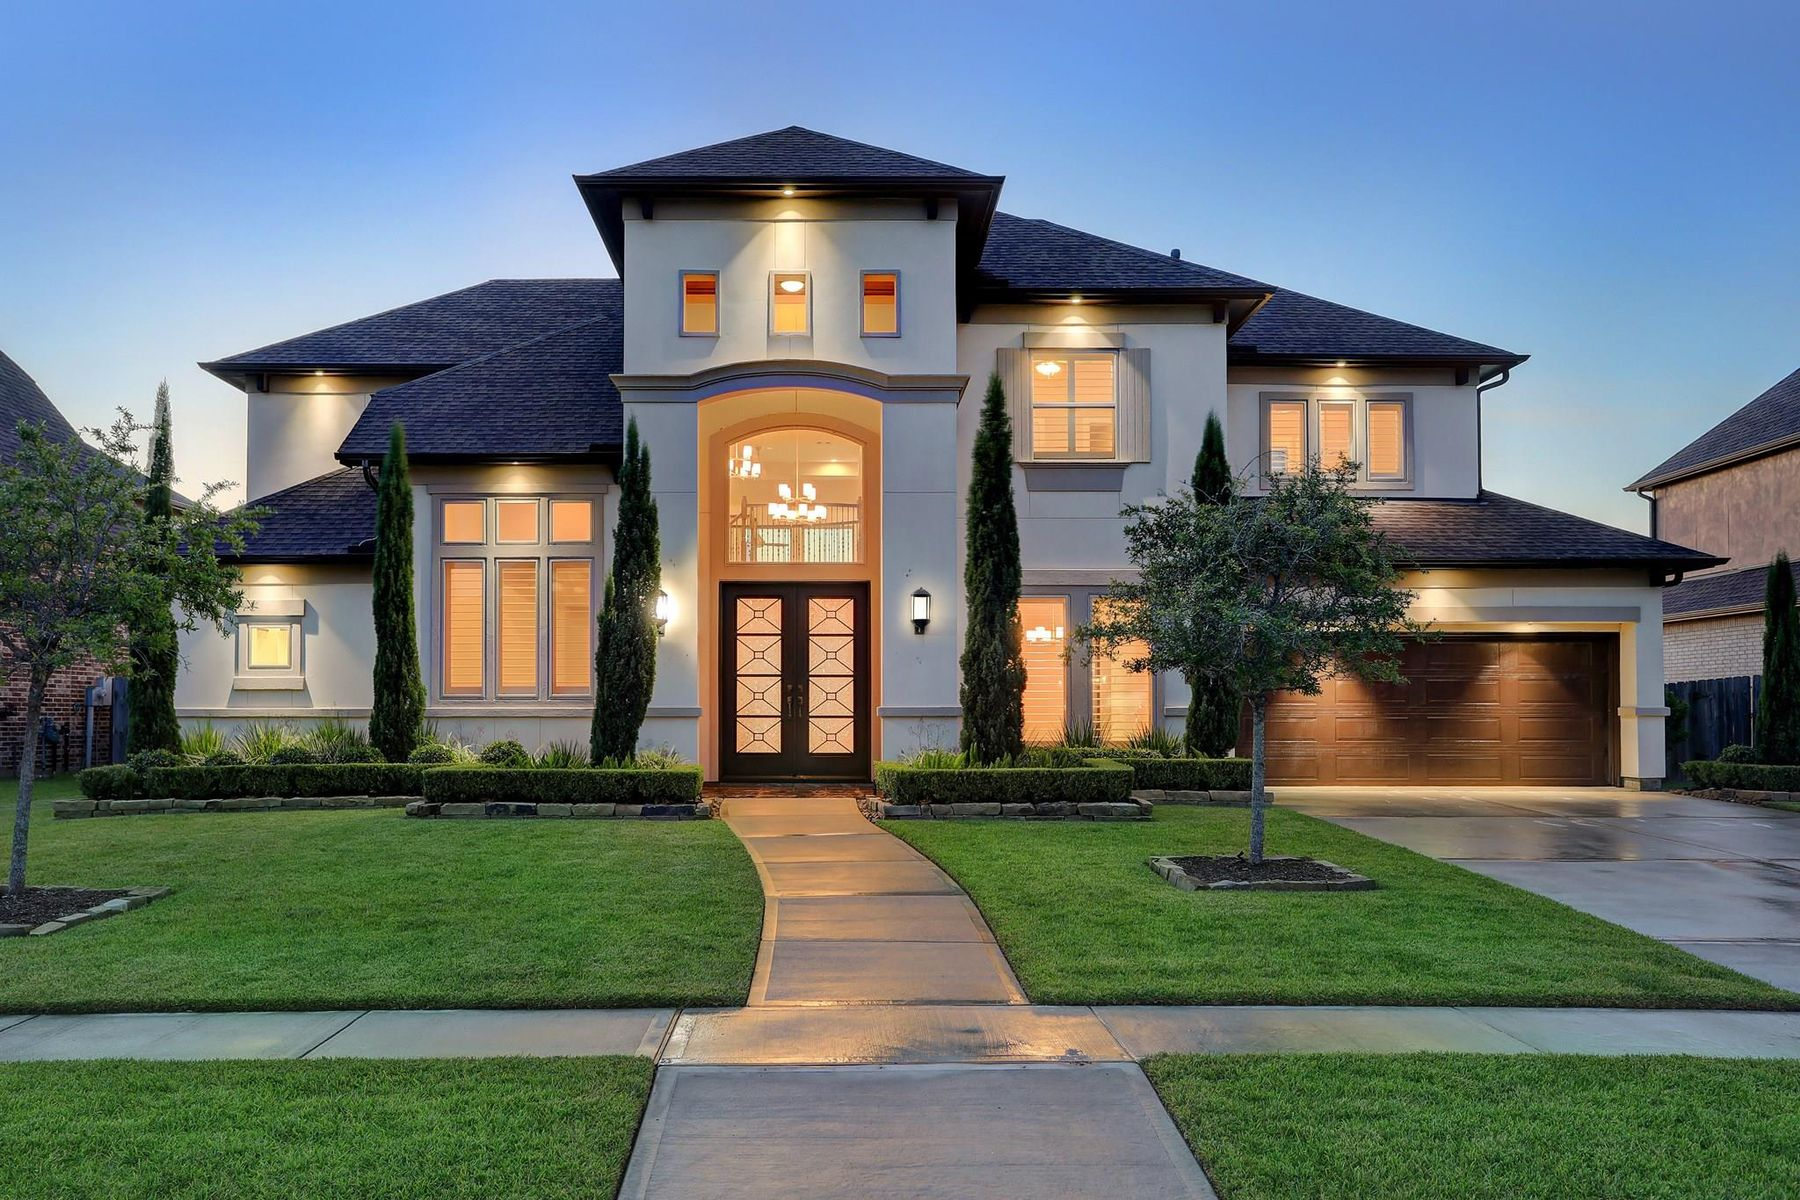 Single Family Homes for Active at 1104 Rymers Switch Lane Friendswood, Texas 77546 United States